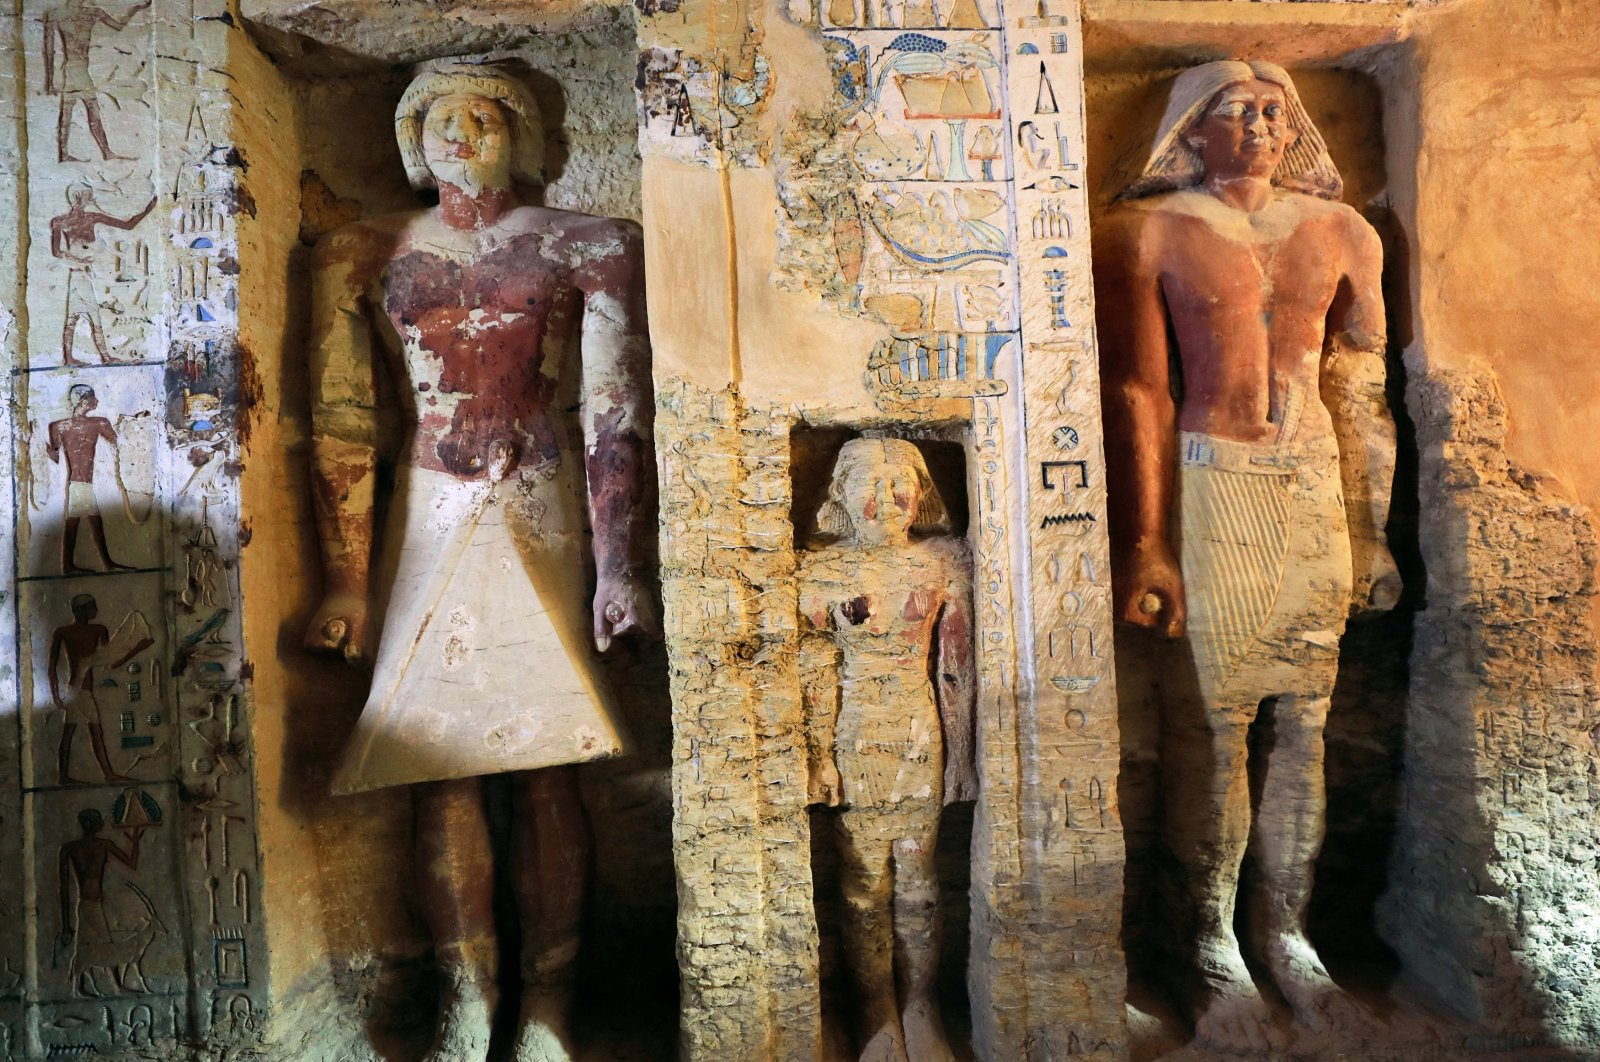 """A view of the newly discovered tomb of """"Wahtye,"""" which dates from the rule of King Neferirkare Kakai, in the Saqqara area near its necropolis, in Giza, Egypt, Dec. 15, 2018. (Reuters Photo)"""